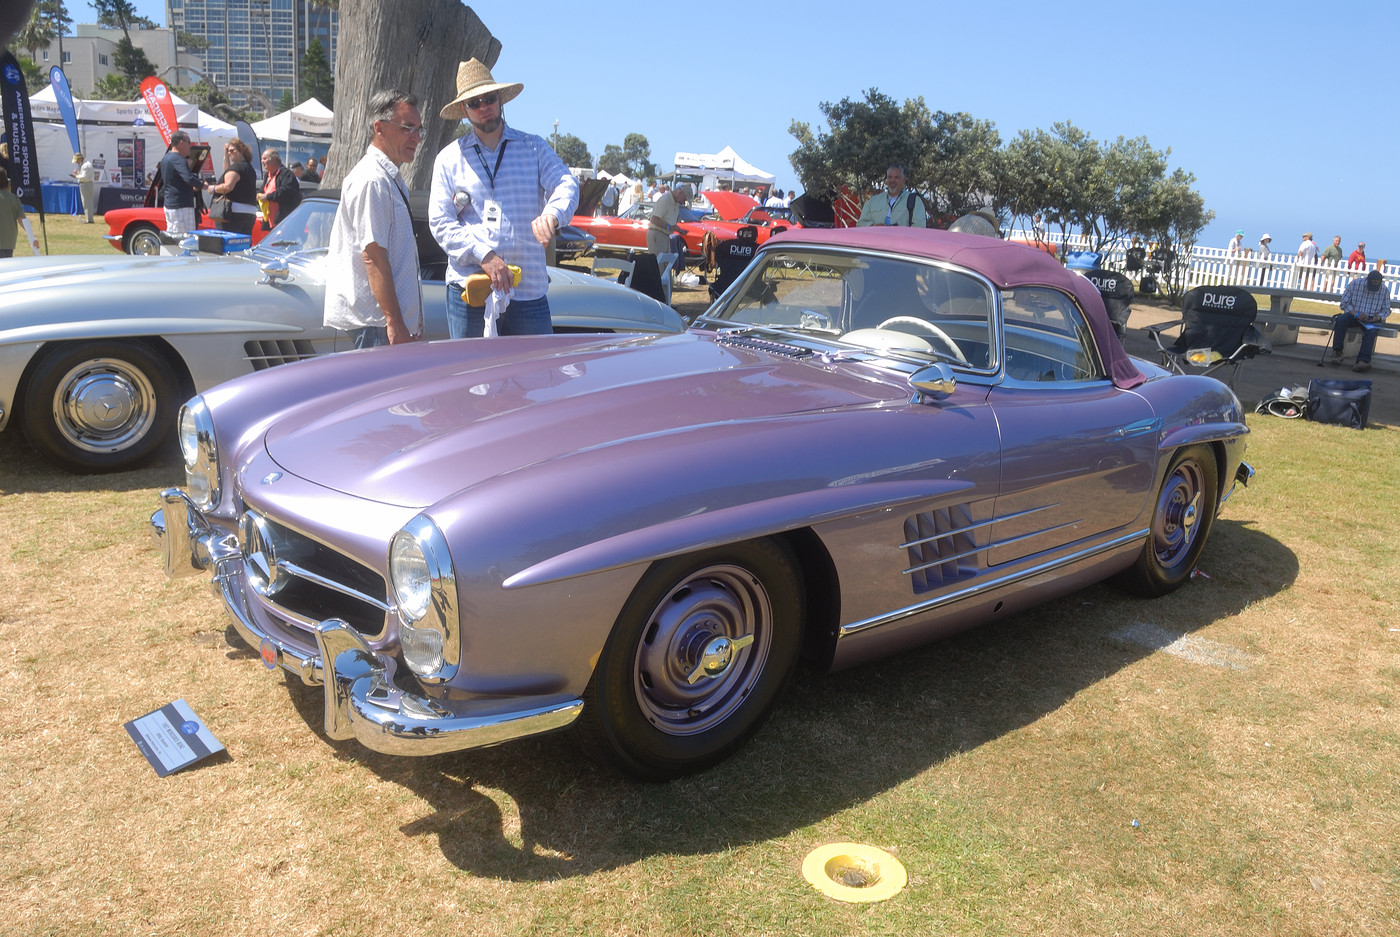 1957 Mercedes-Benz 300 SL roadster presented by Hjeltness Restoration